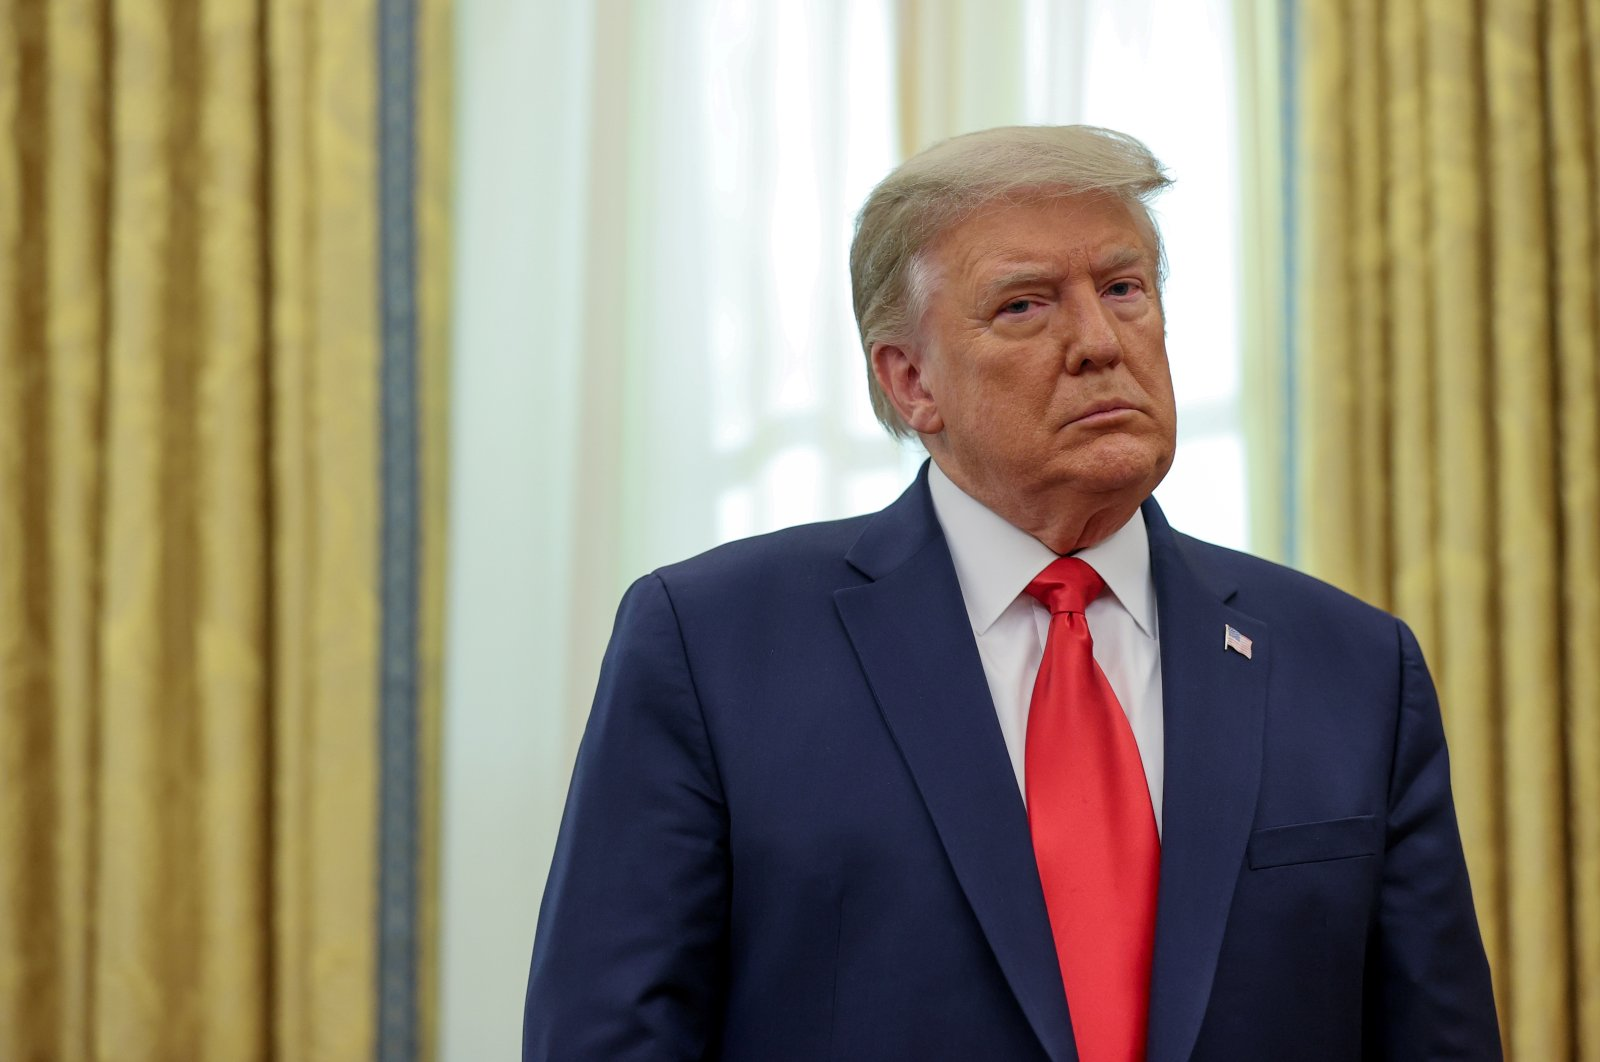 U.S. President Donald Trump participates in a medal ceremony in the Oval Office at the White House in Washington, D.C., Dec. 3, 2020. (Reuters Photo)